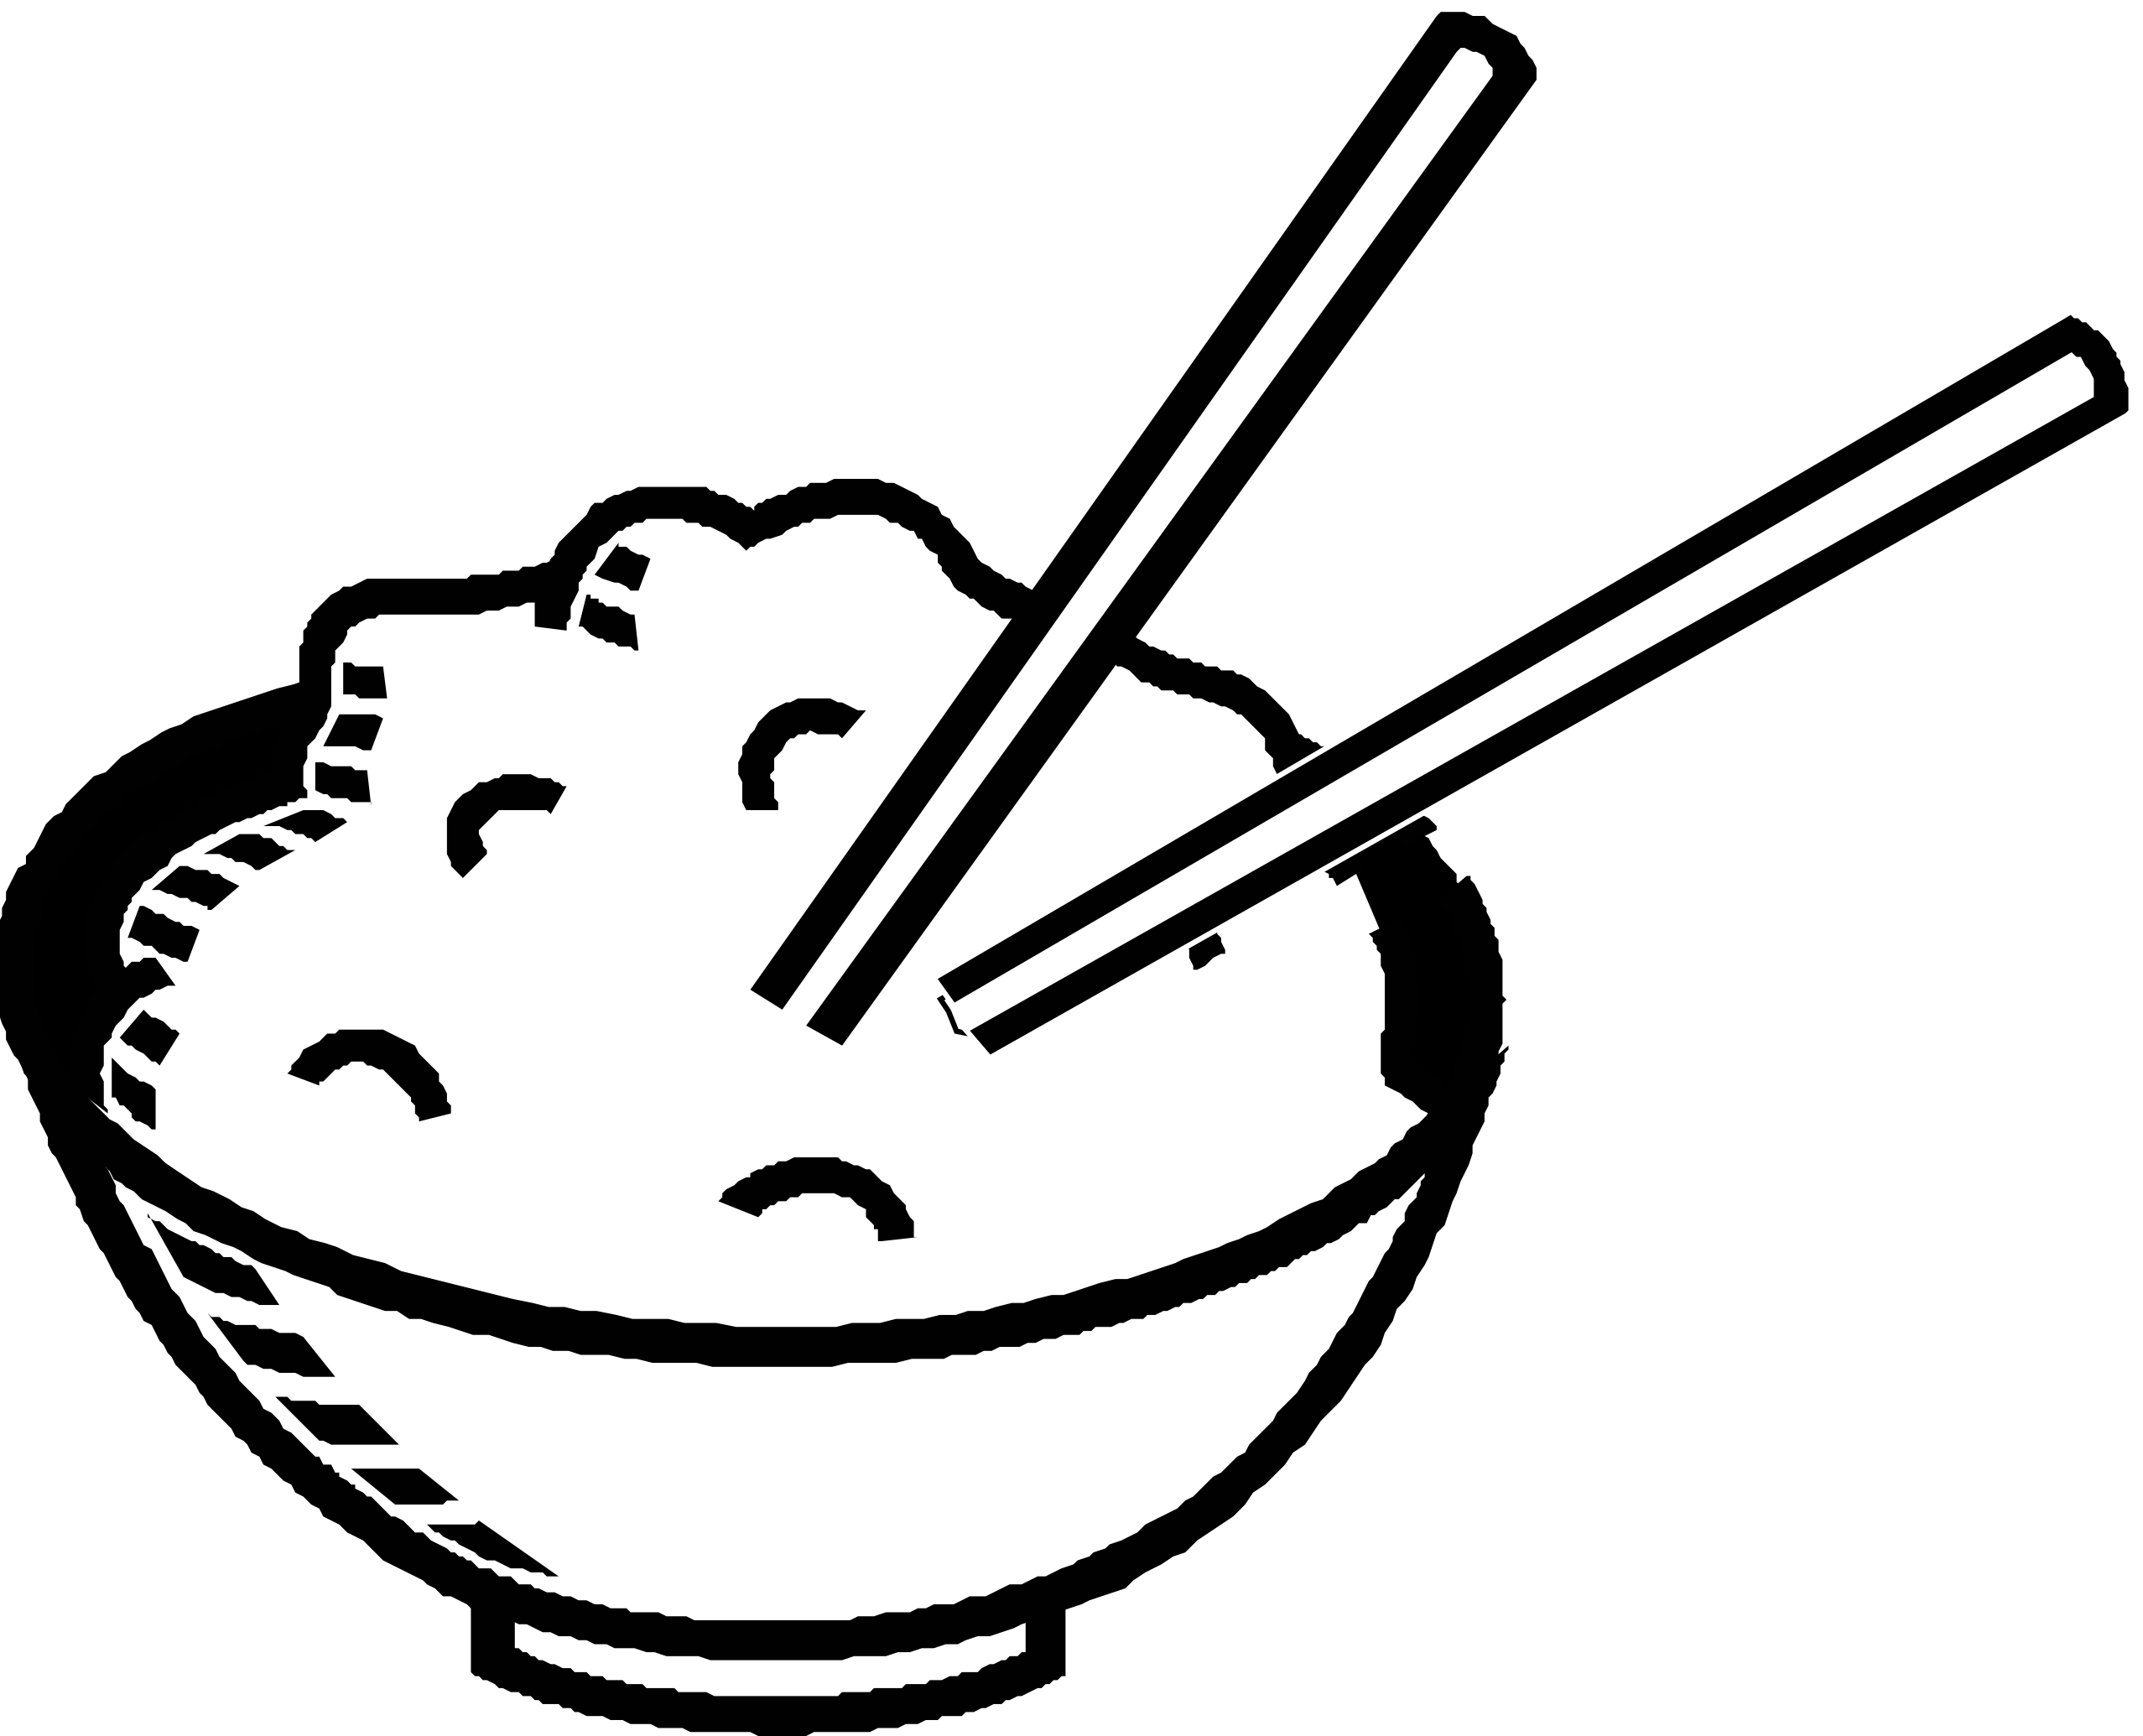 Cereal black and white. Plate clipart bowl